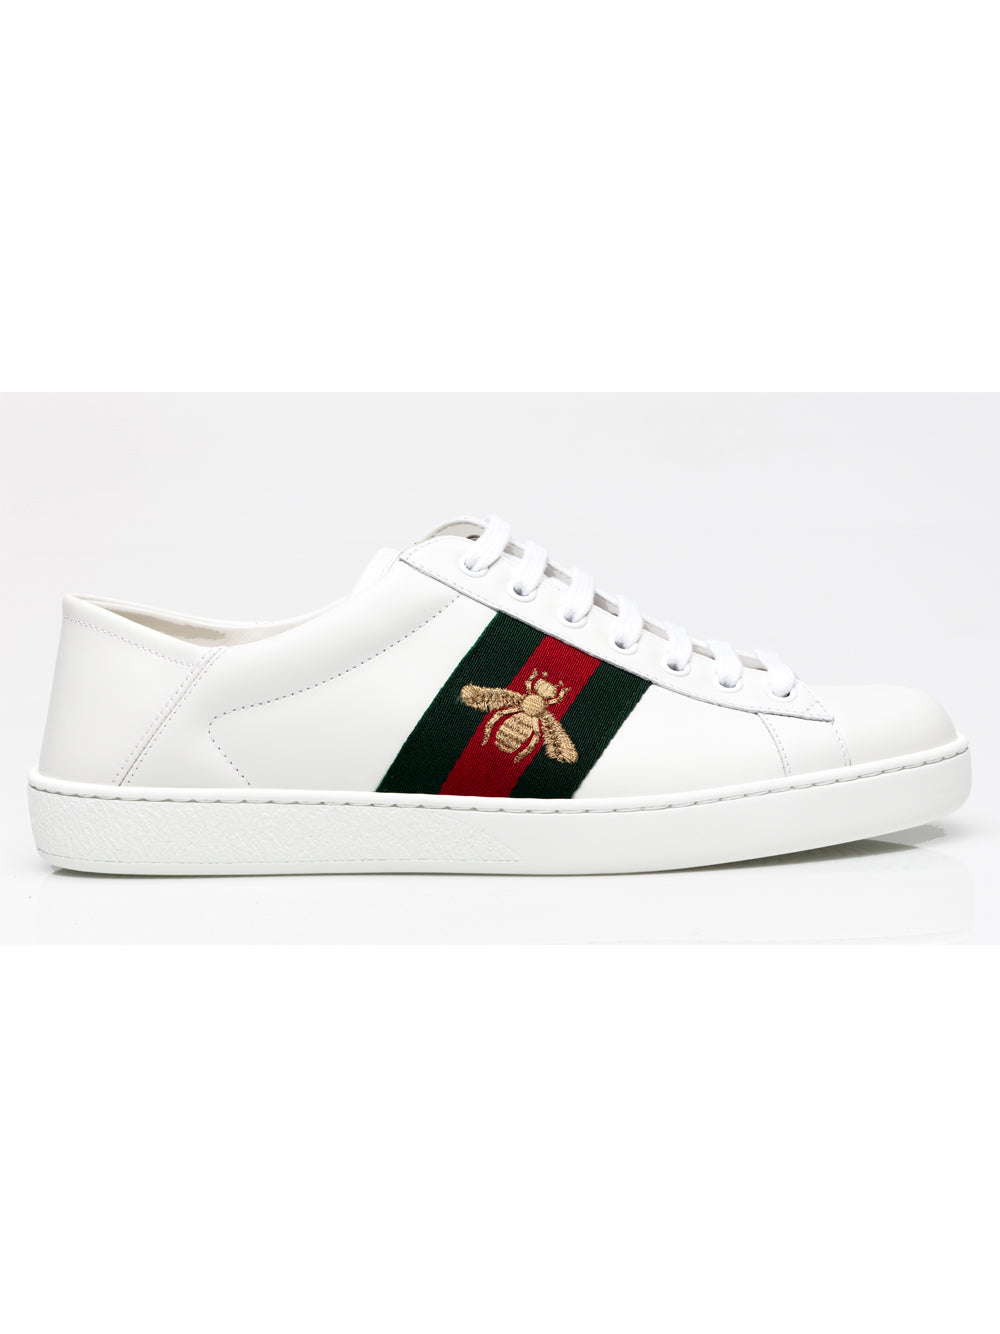 86f24addbe0f Gucci Womens Ace Embroidered Bee Sneakers